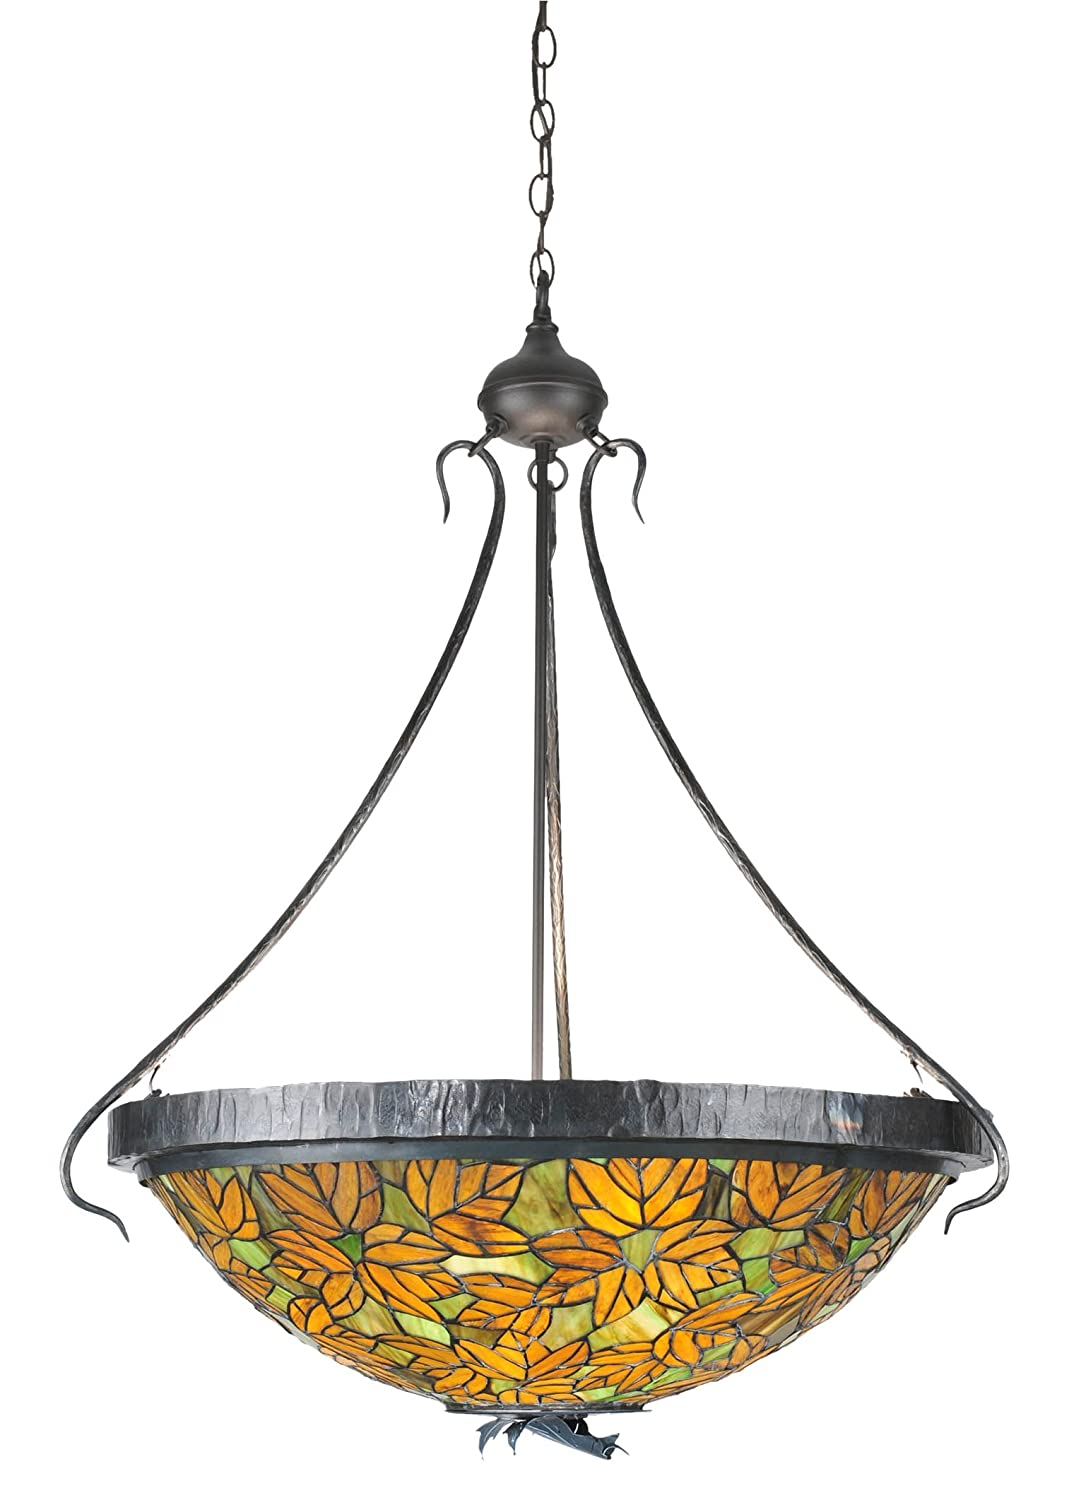 Meyda tiffany 99989 autumn leaf inverted pendant light fixture 30 width amazon com